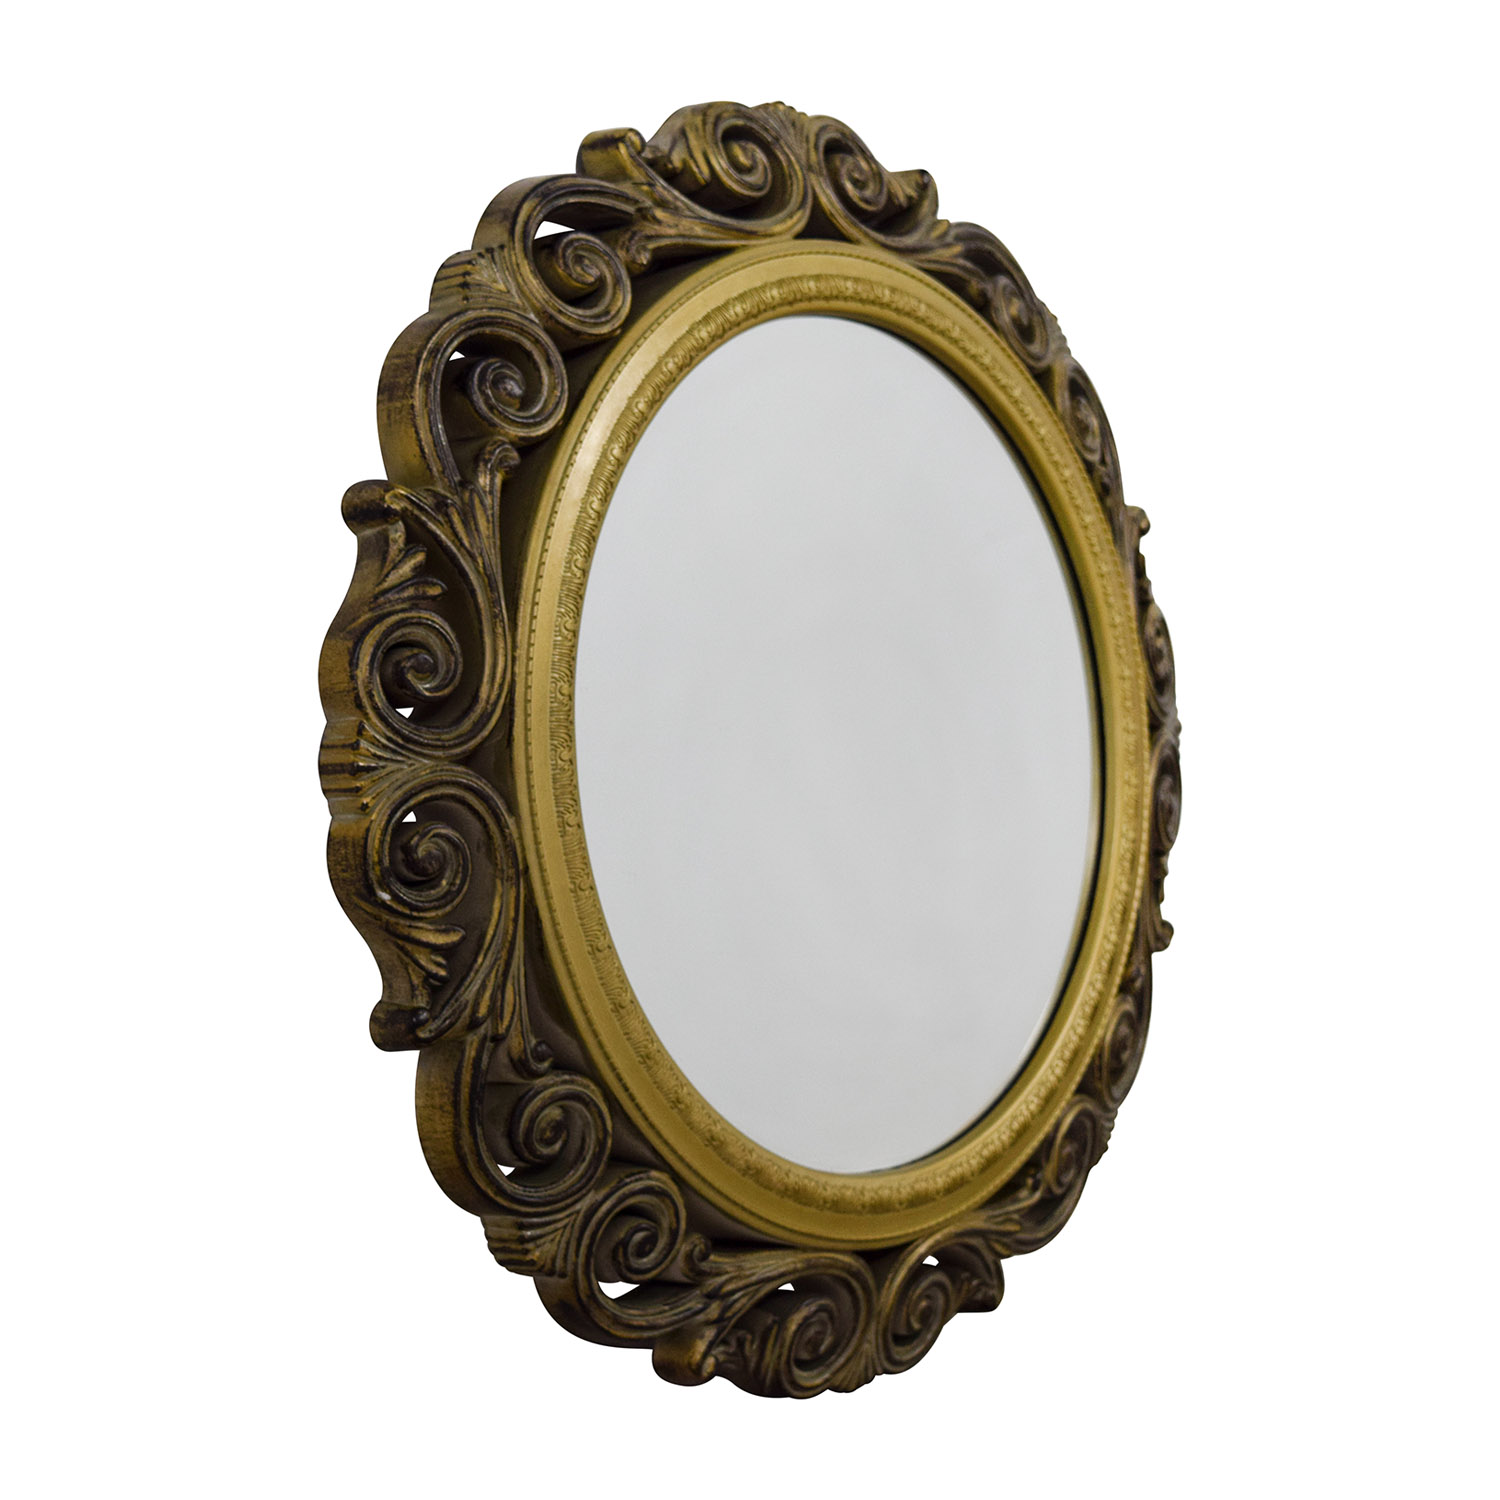 Gilded Round Wall Decor : Off gold scrolled frame round wall mirror decor